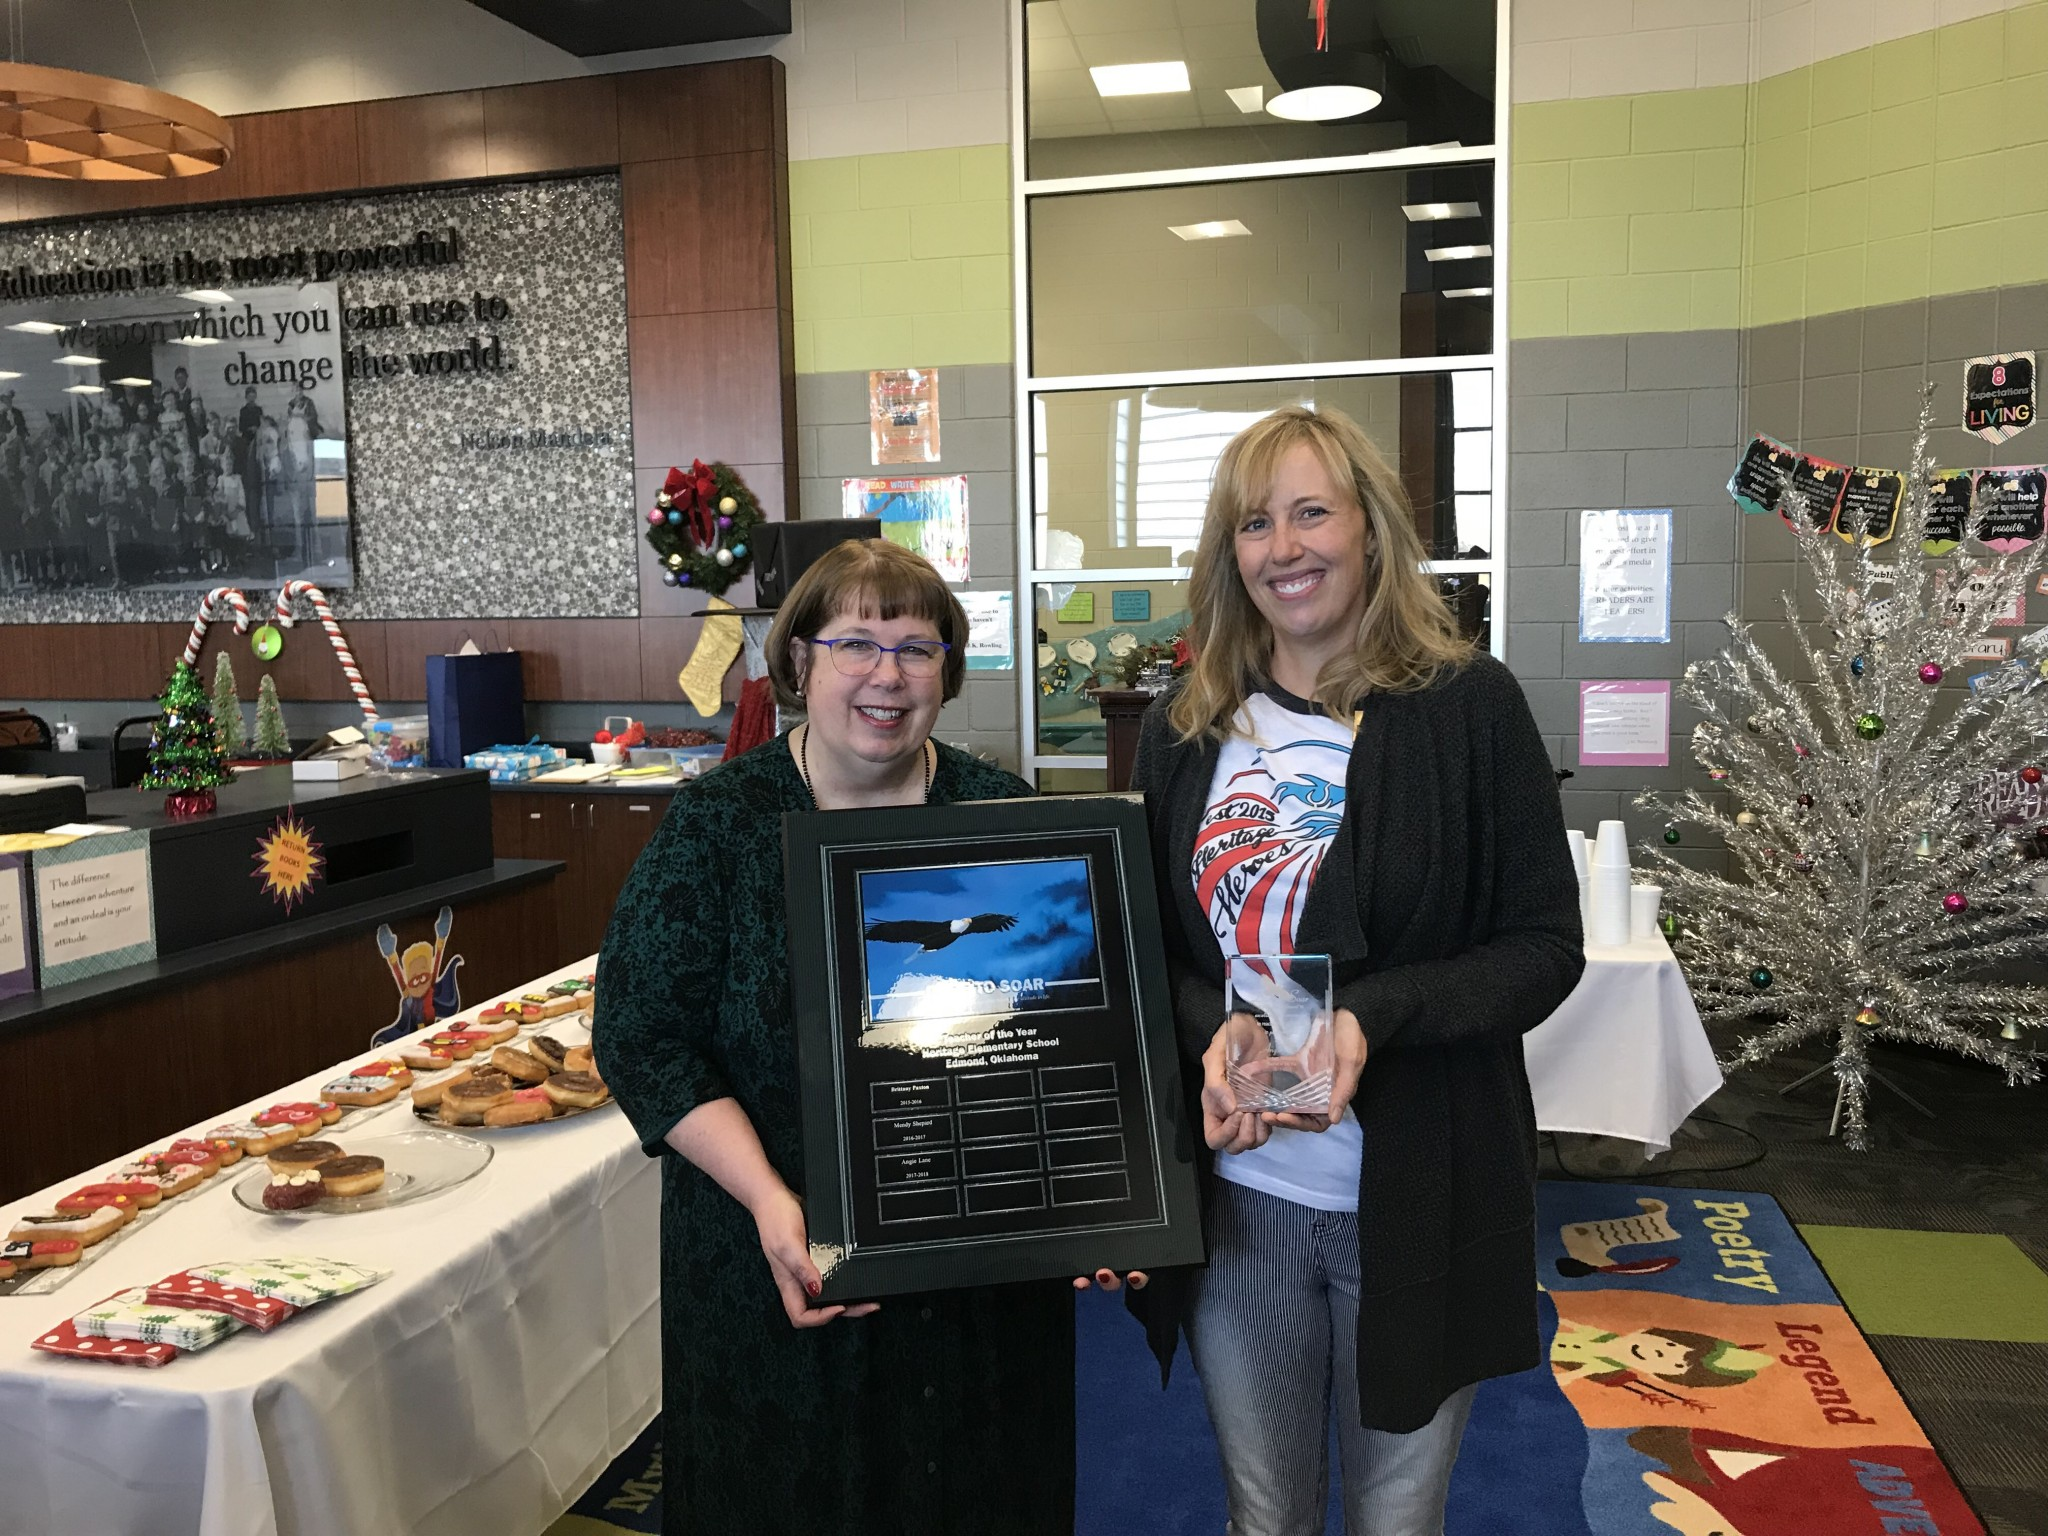 Mrs. Bugg presenting Mrs. Lane with teacher of year award